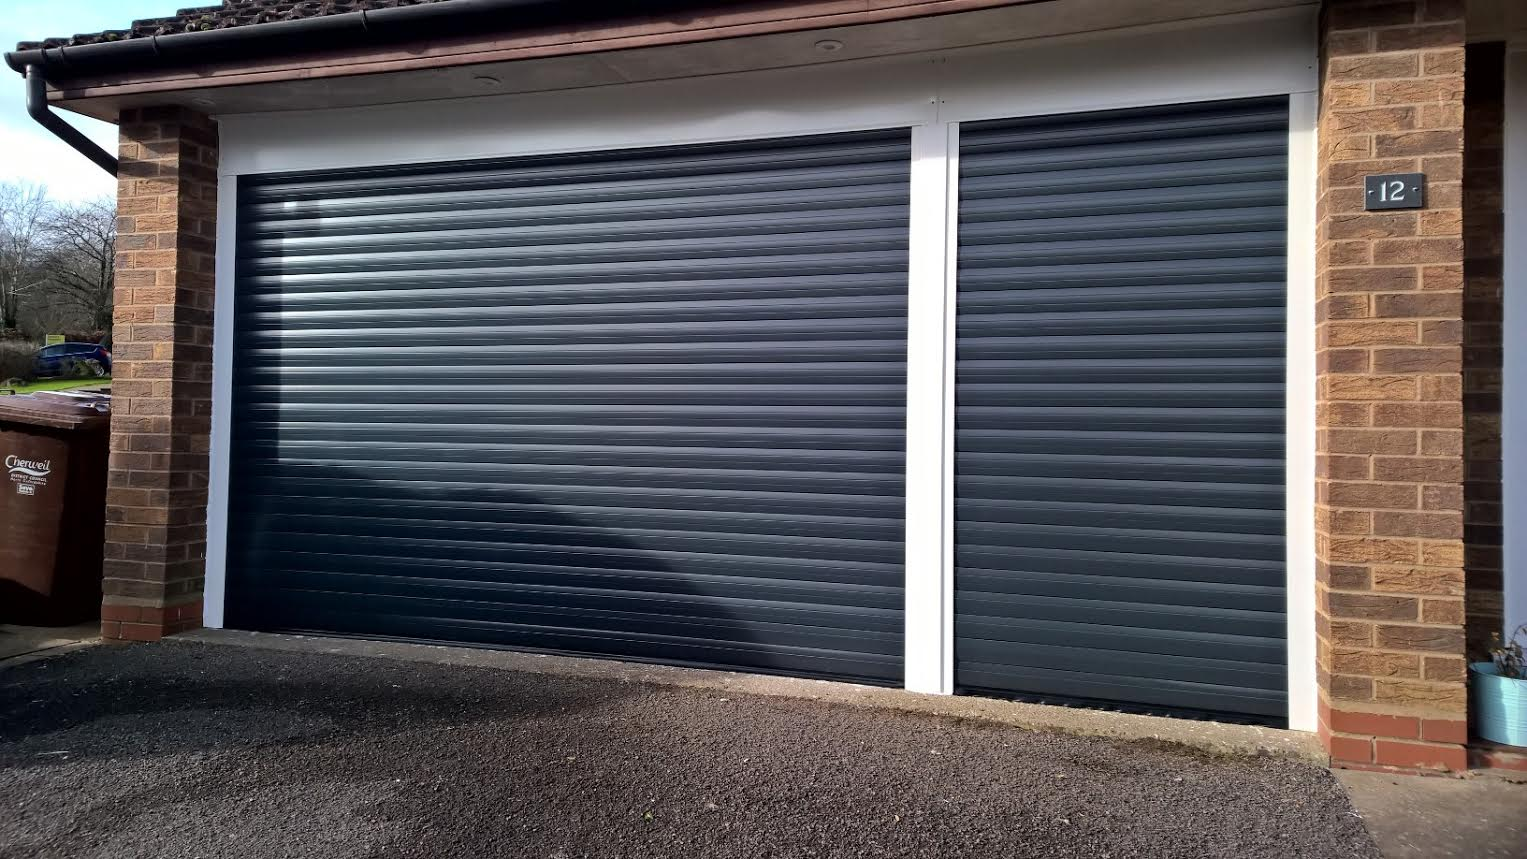 Pair Of 77 Automated Insulated Roller Garage Doors In Anthracite